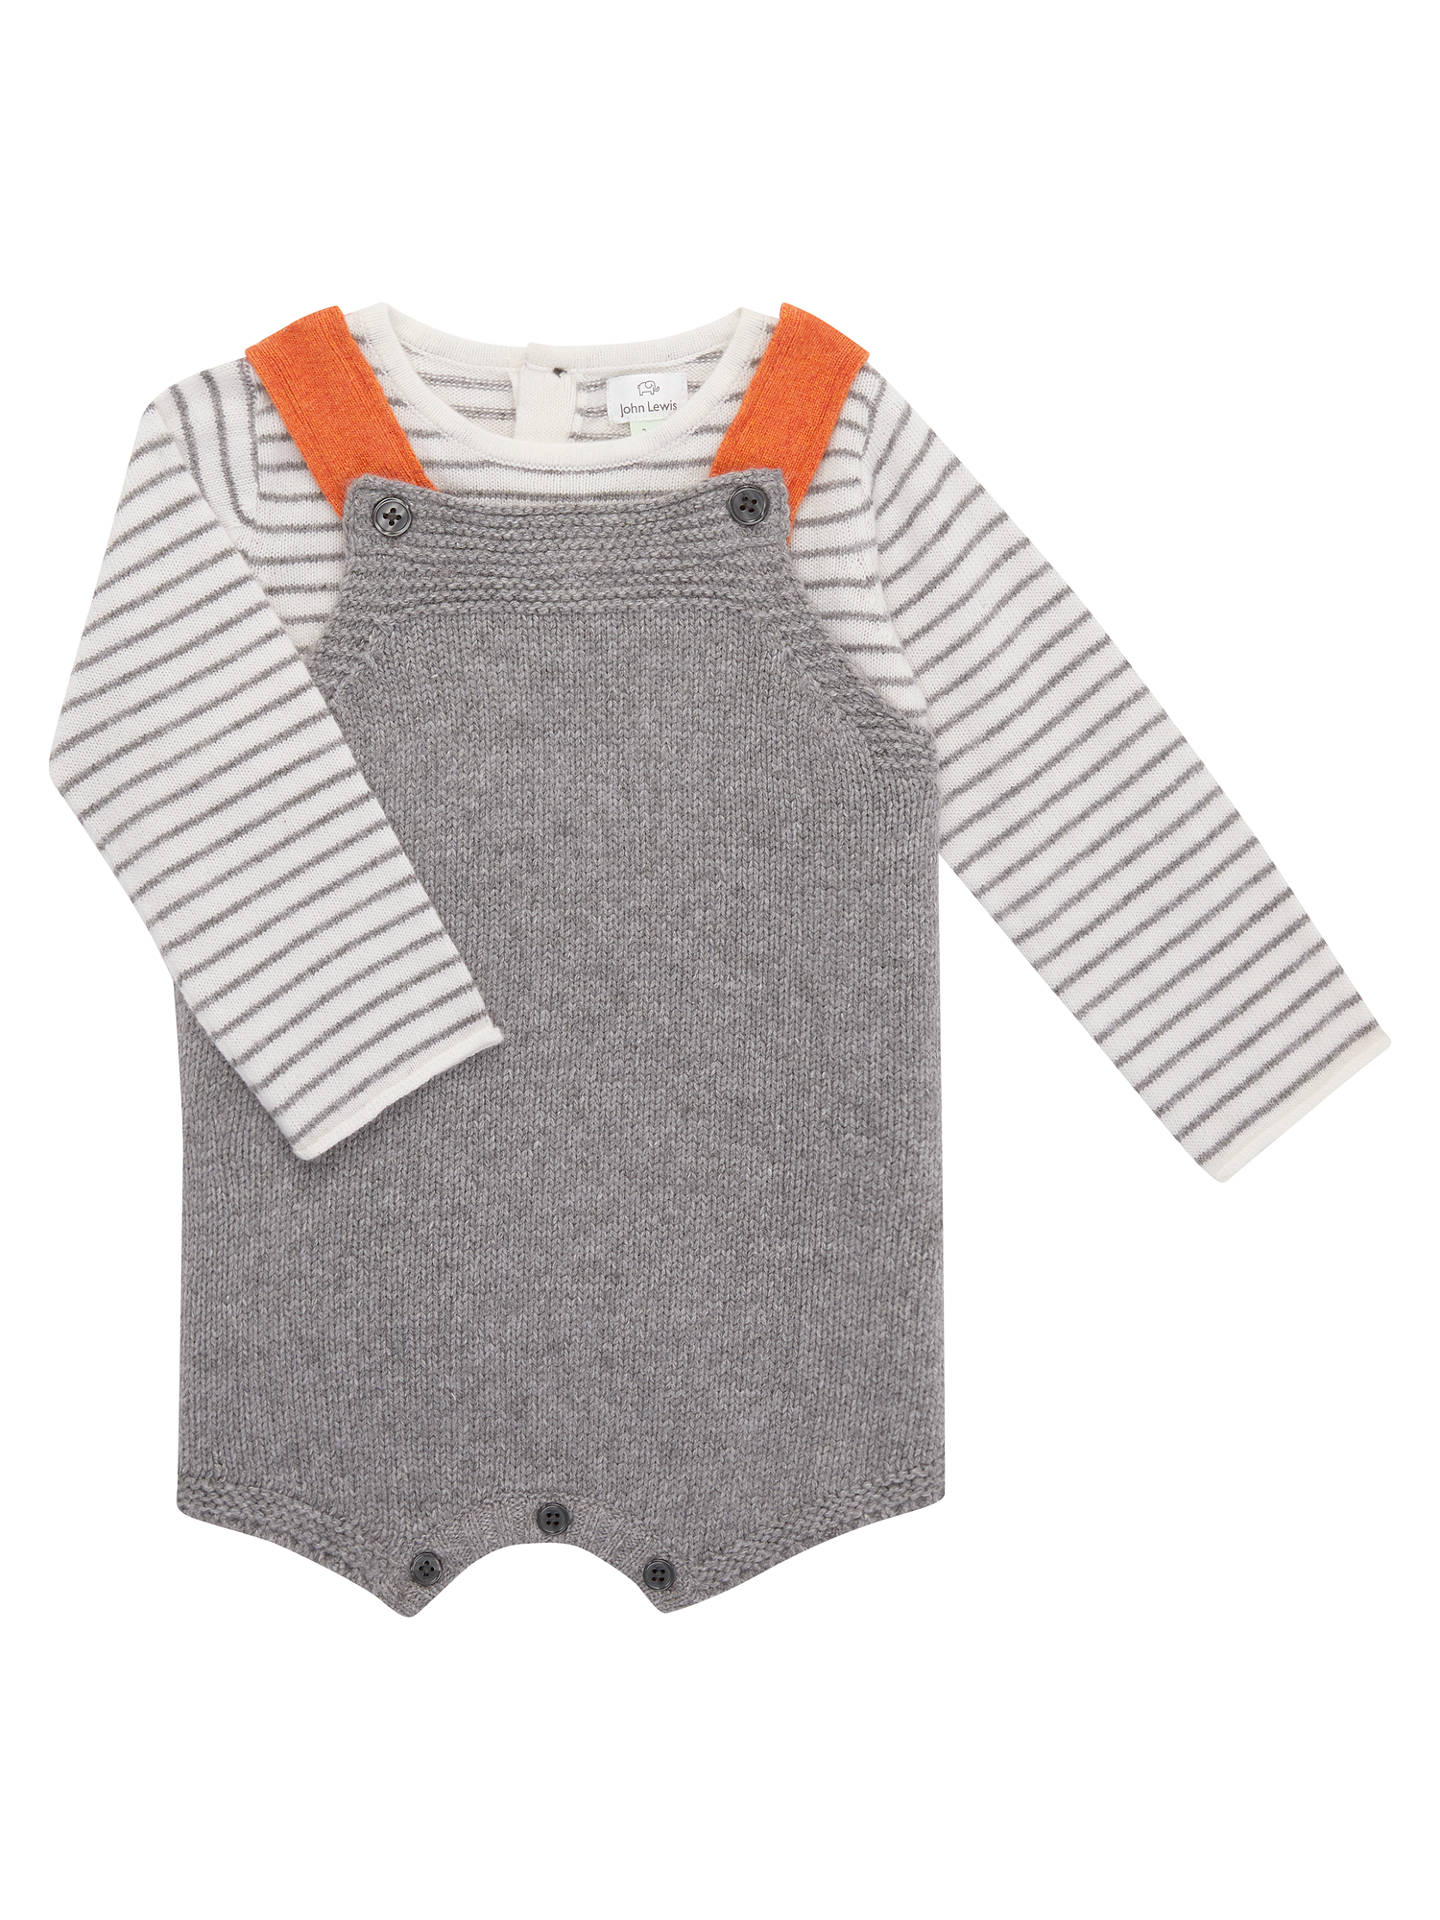 BuyJohn Lewis Baby Knit Romper with Top, Grey, Newborn Online at johnlewis.com